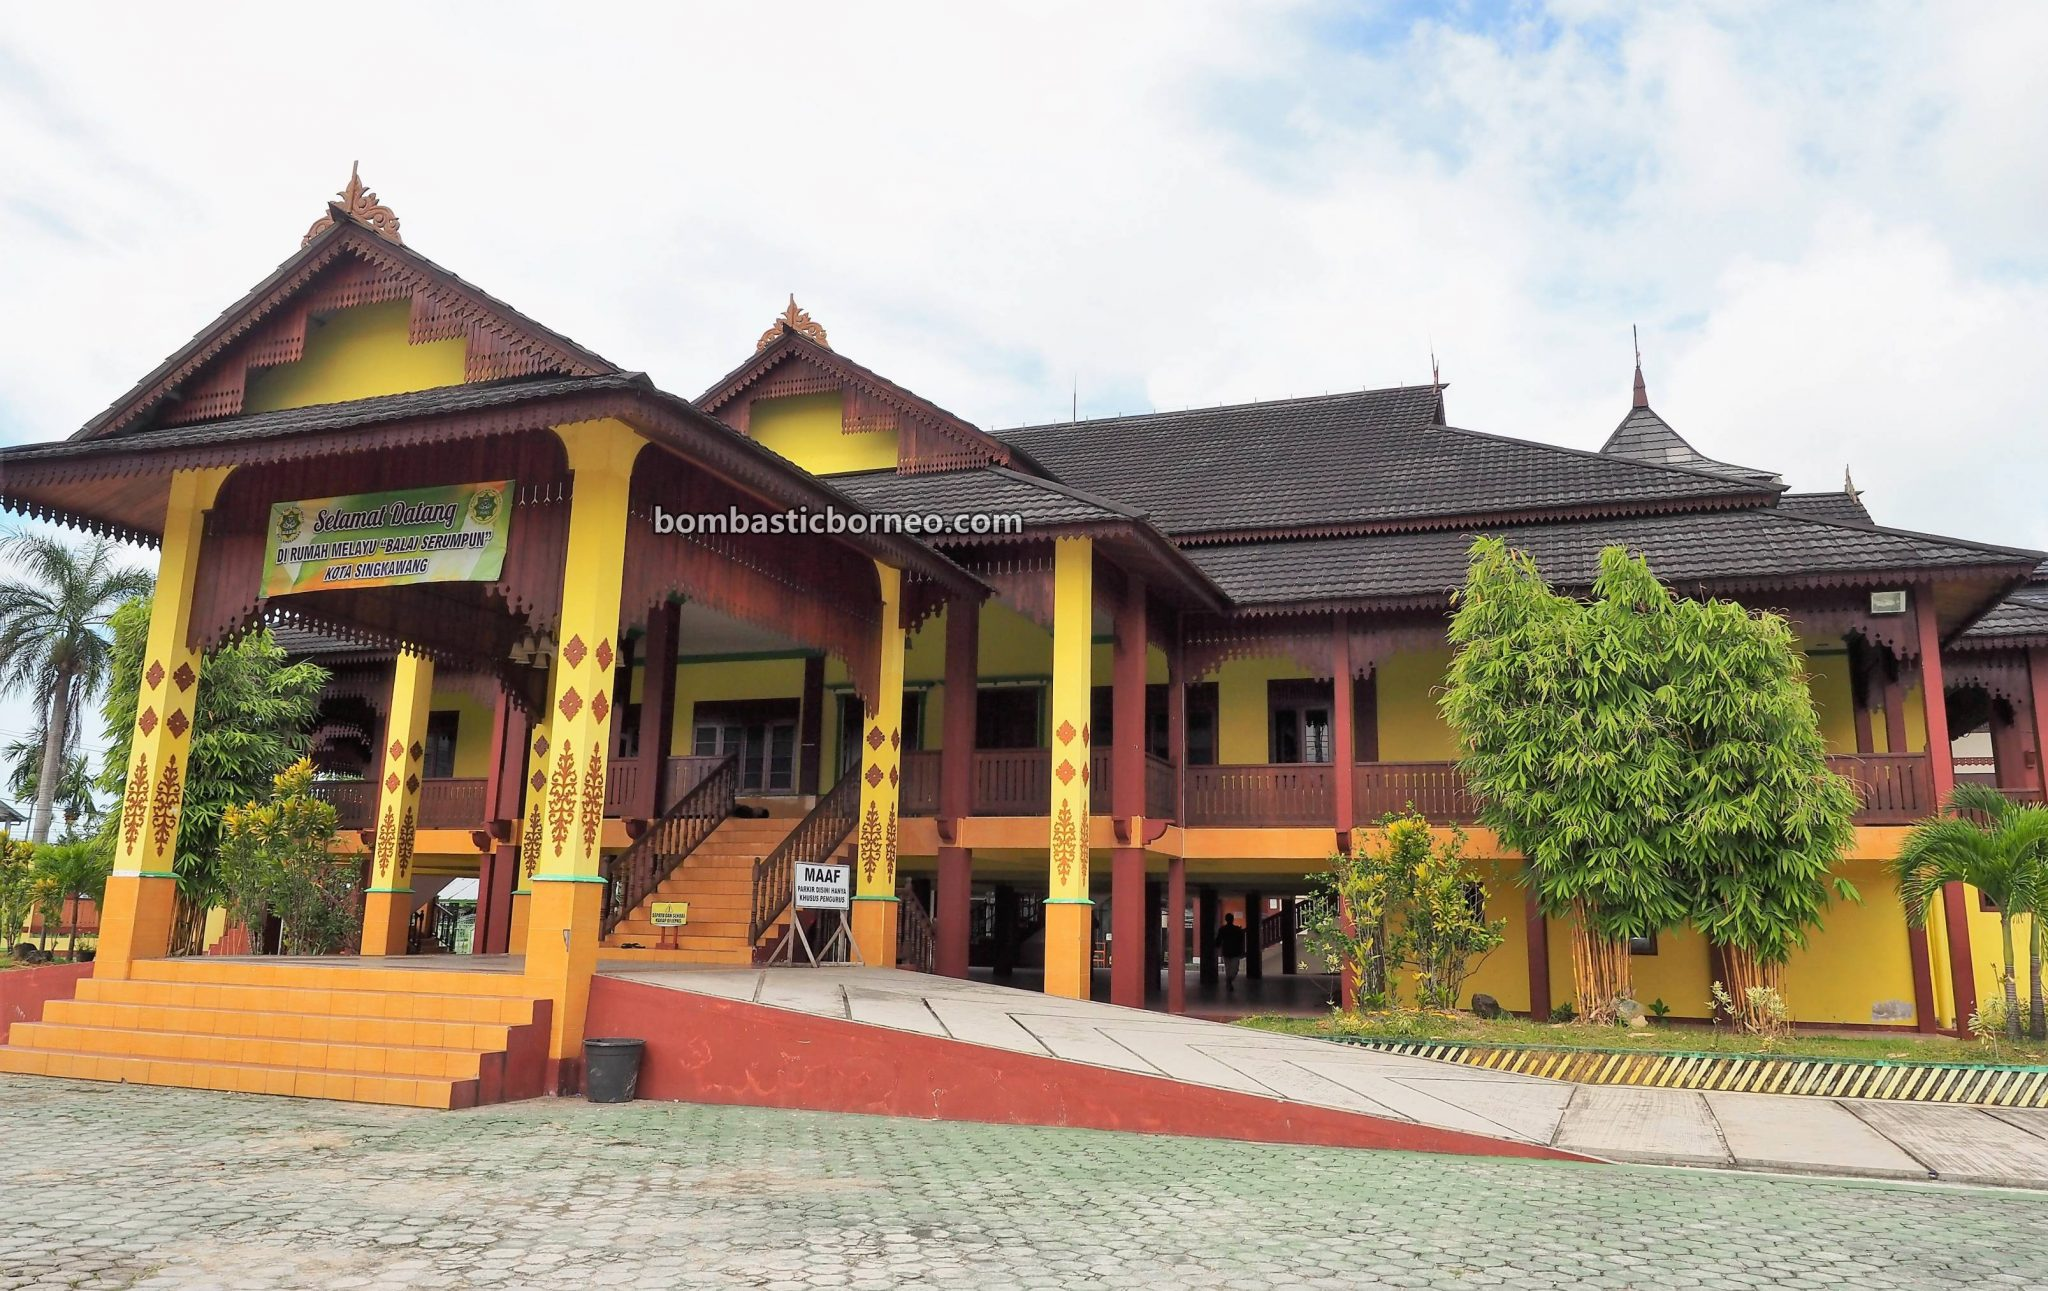 authentic, budaya, culture, Rumah Melayu, destination, Ethnic, Indonesia, tourist attraction, Tourism, Obyek wisata, travel guide, Trans Border, 印尼西加里曼丹, 山口洋旅游景点